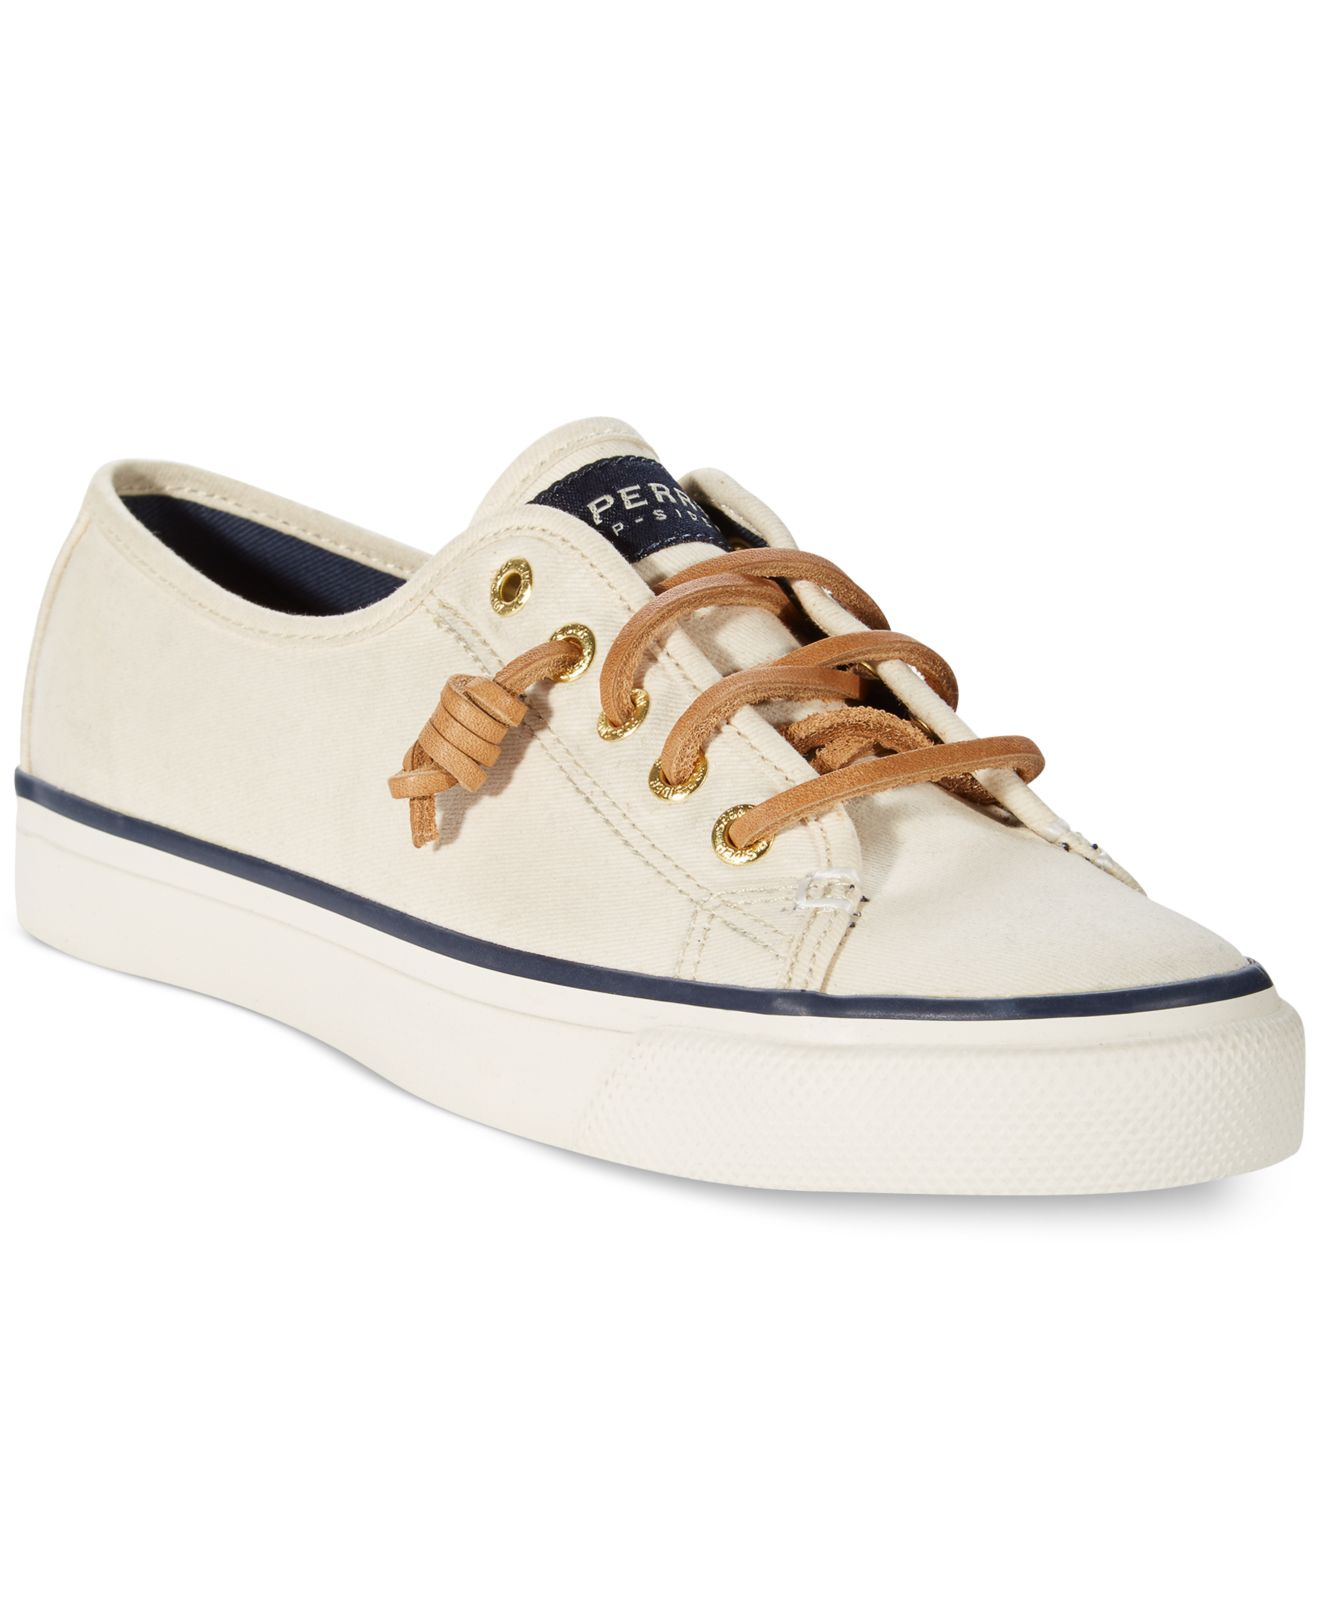 Sperry Top Sider Shoes Women